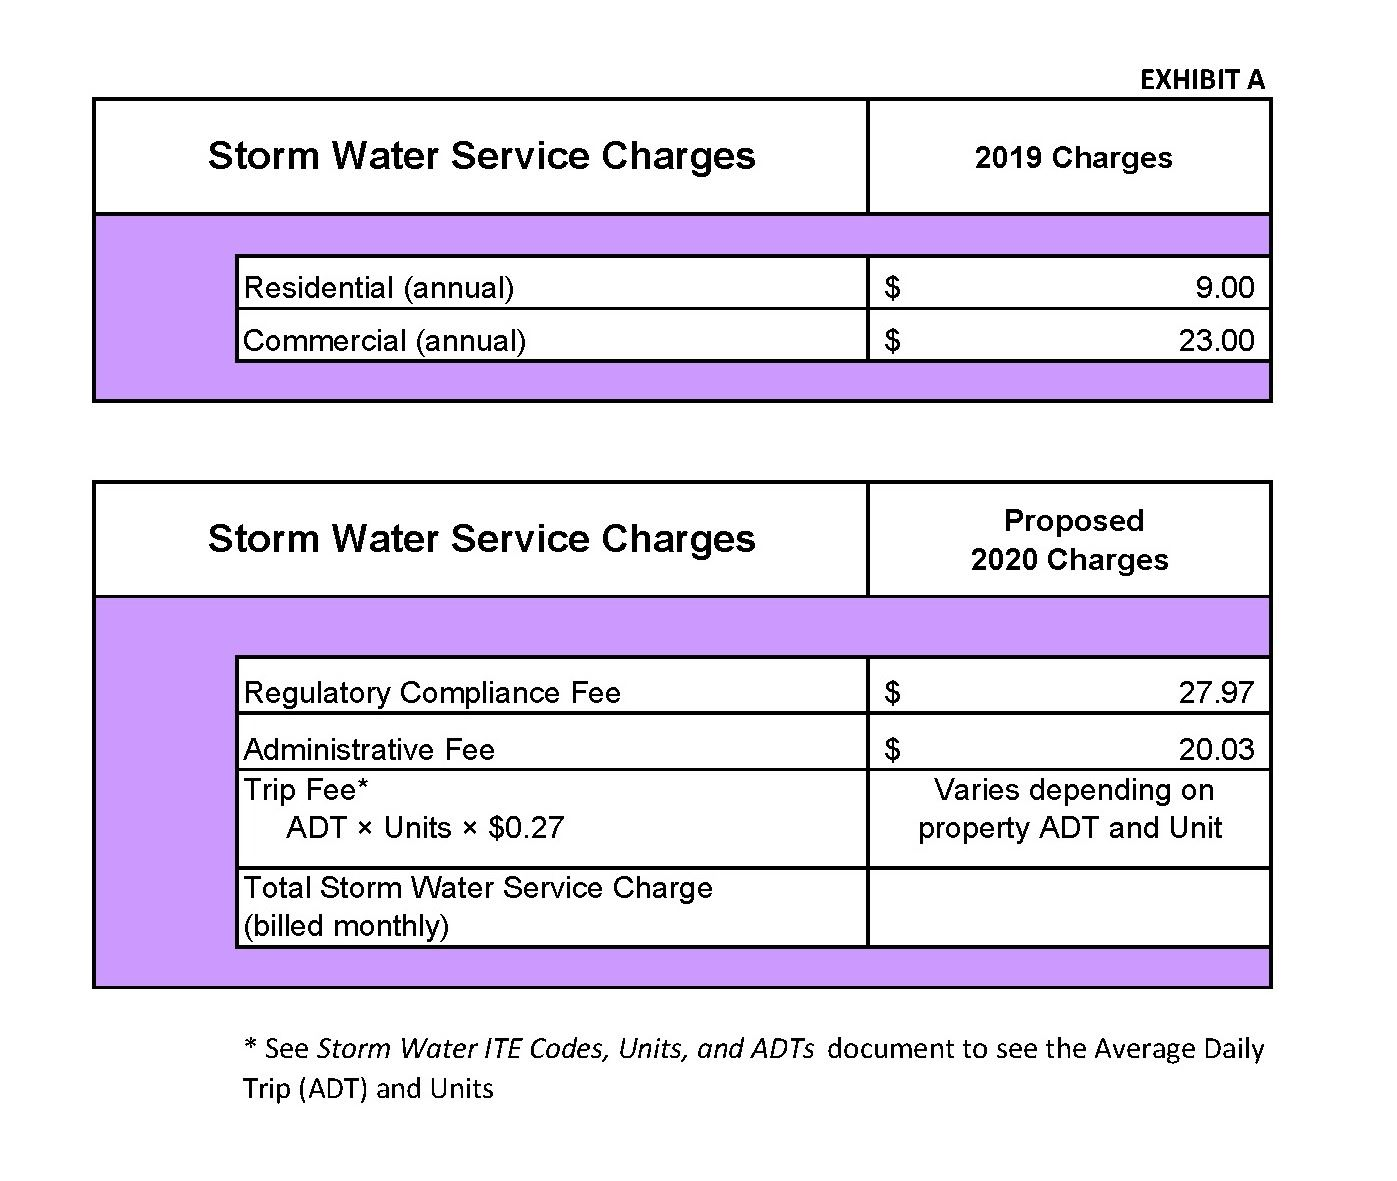 Comparison of 2019 and newly proposed 2020 Storm Water Utility Rates